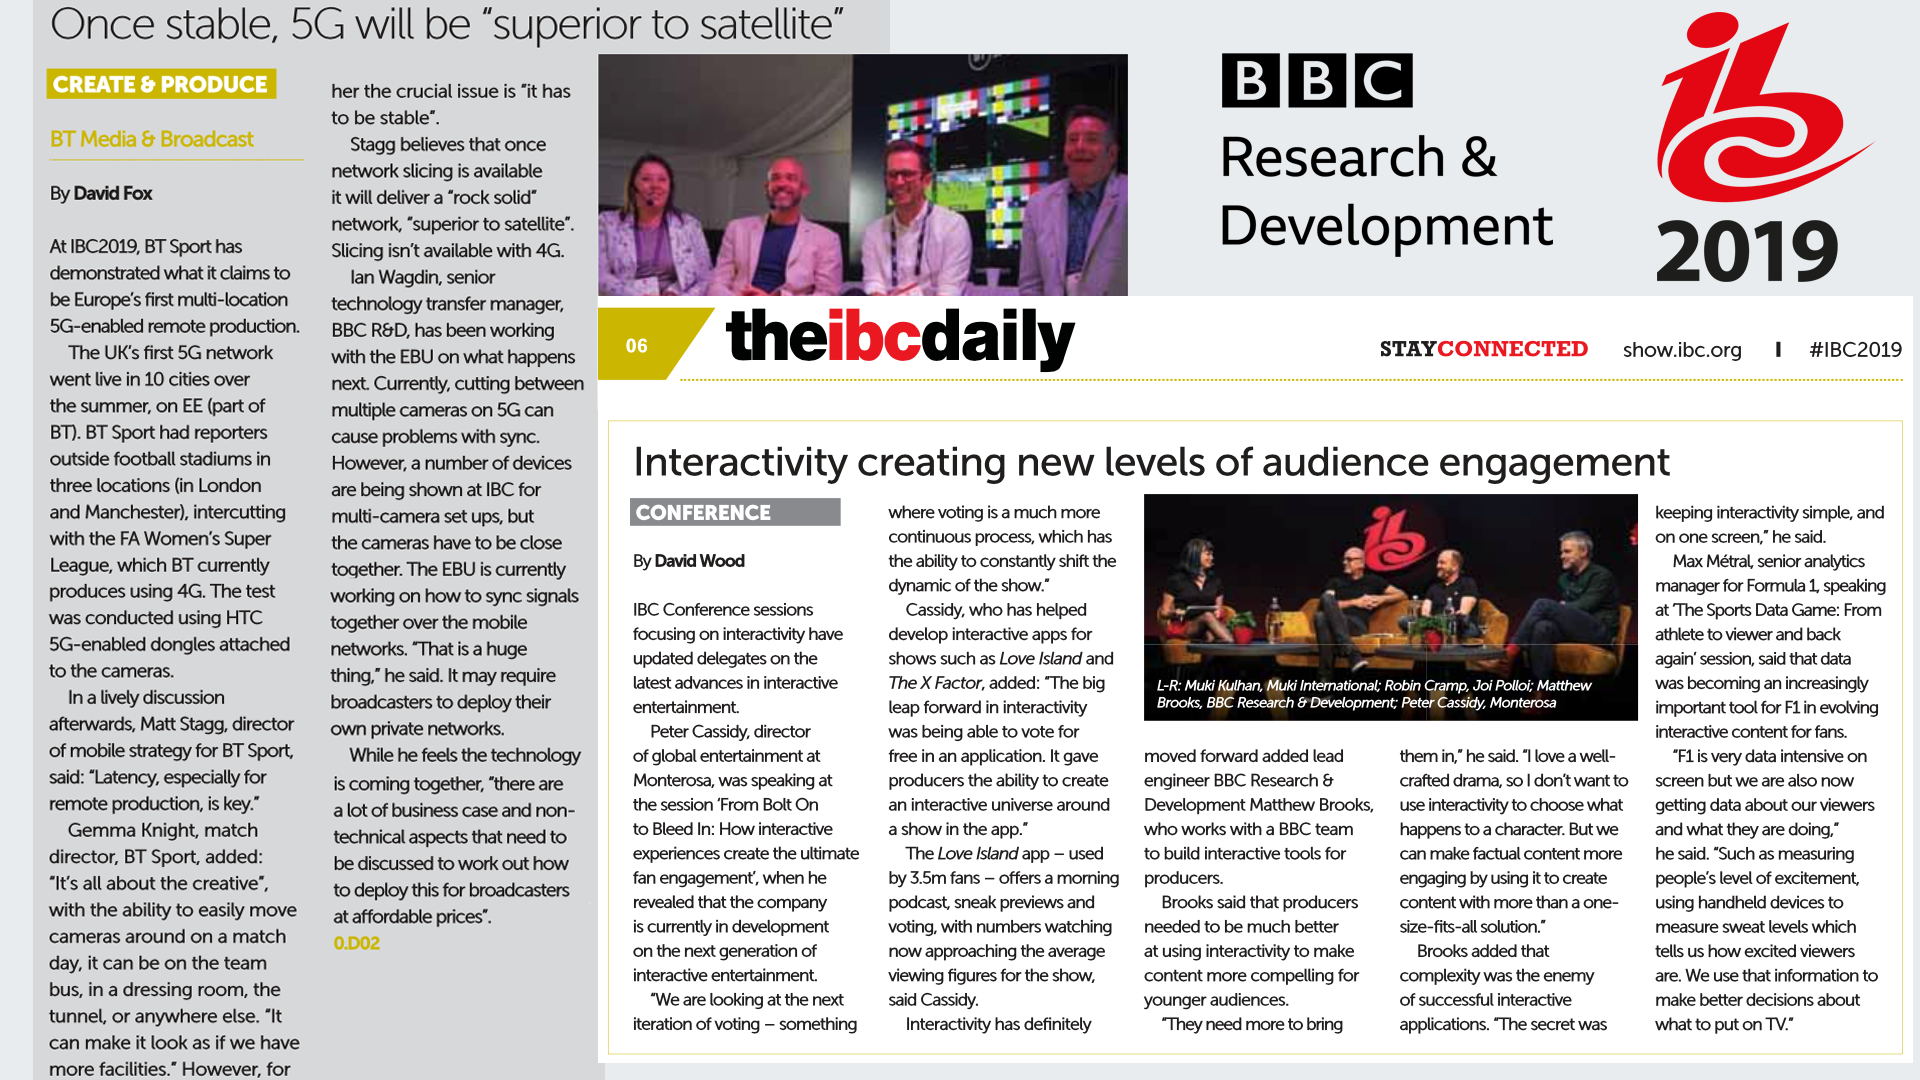 IBC Daily coverage from Tuesday.